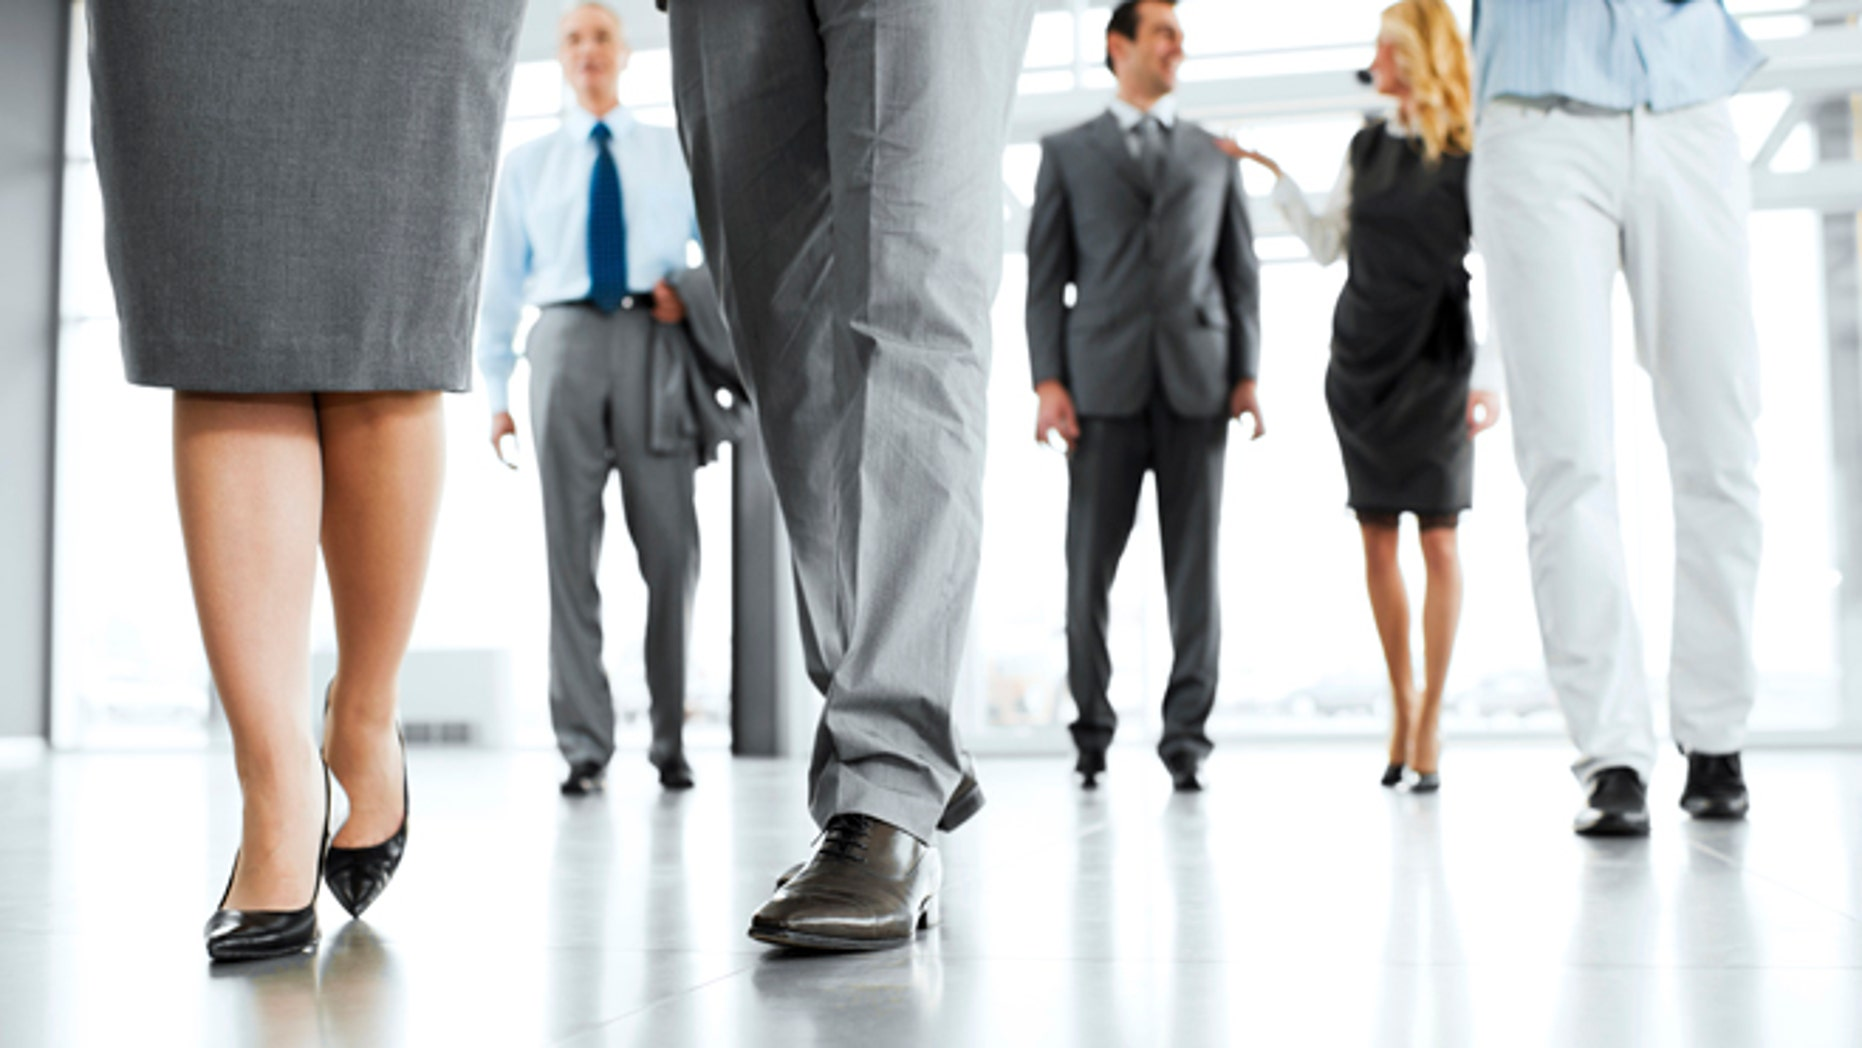 Businesspeople entering the building.  The focus is on the human legs in the foreground. [url=http://www.istockphoto.com/search/lightbox/9786622][img]http://dl.dropbox.com/u/40117171/business.jpg[/img][/url][url=http://www.istockphoto.com/search/lightbox/9786738][img]http://dl.dropbox.com/u/40117171/group.jpg[/img][/url]